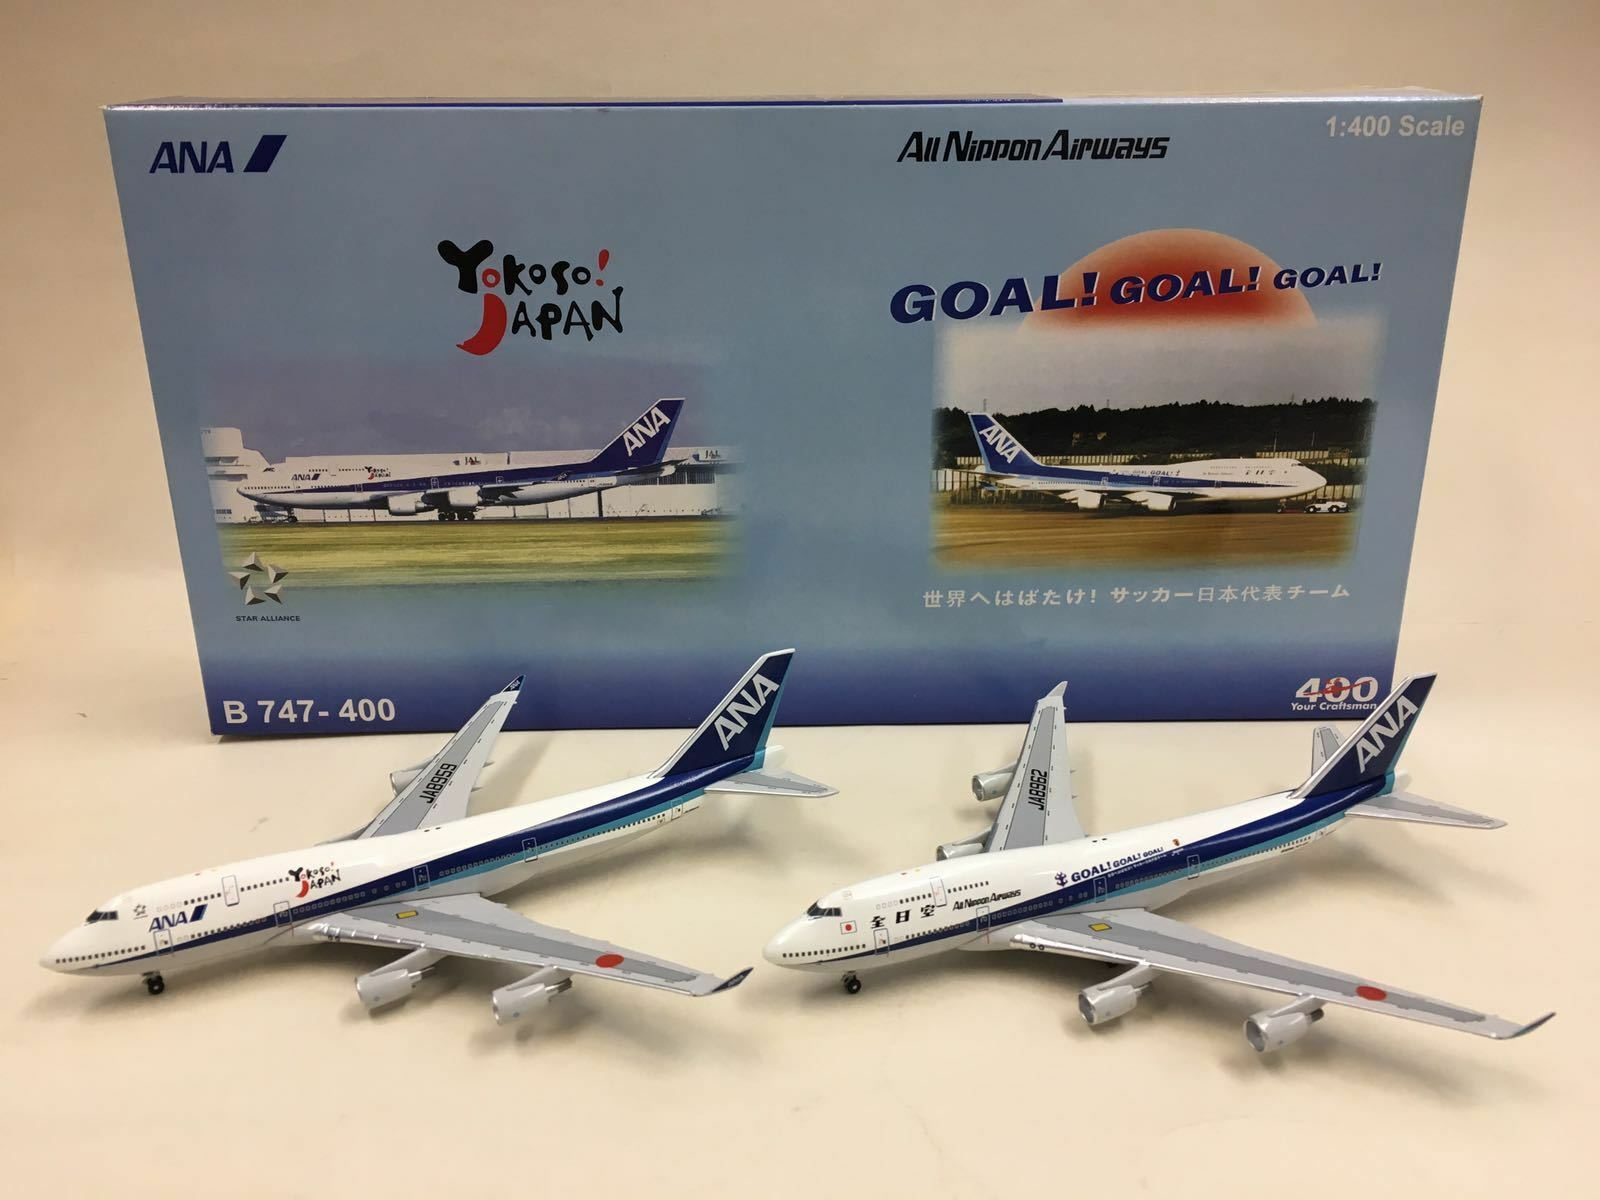 Big Bird/ Aeroclassics ANA Boeing 747-400 Set 1:400 JA8959 JA8962